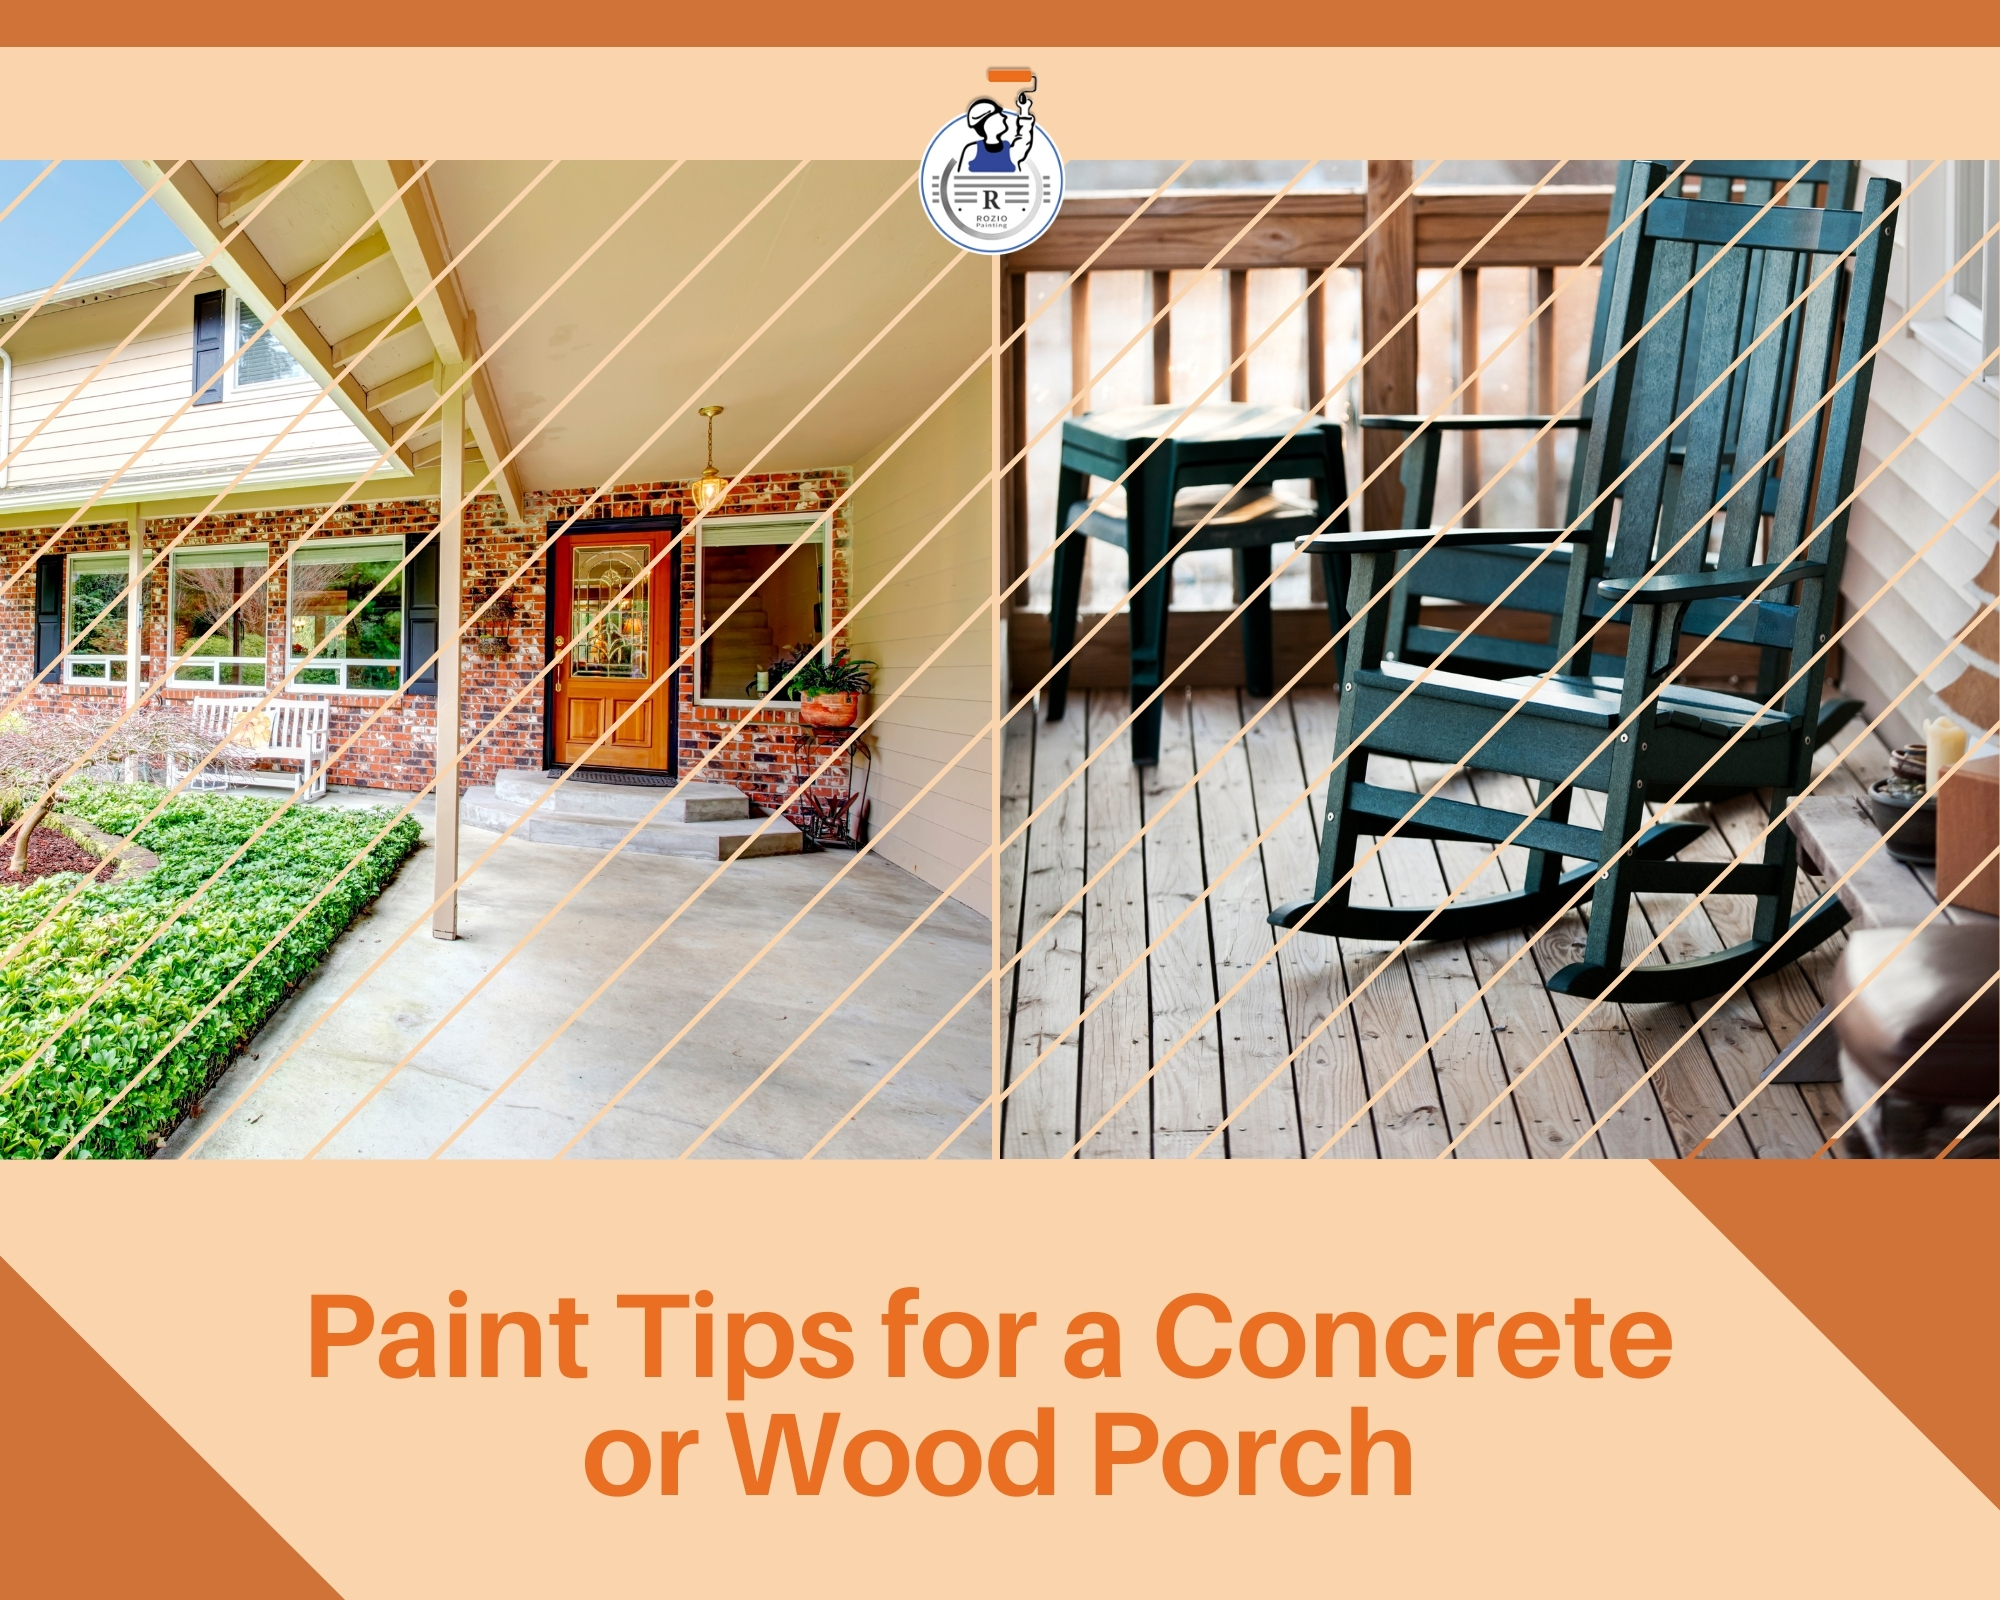 Paint Tips for a Concrete or Wood Porch